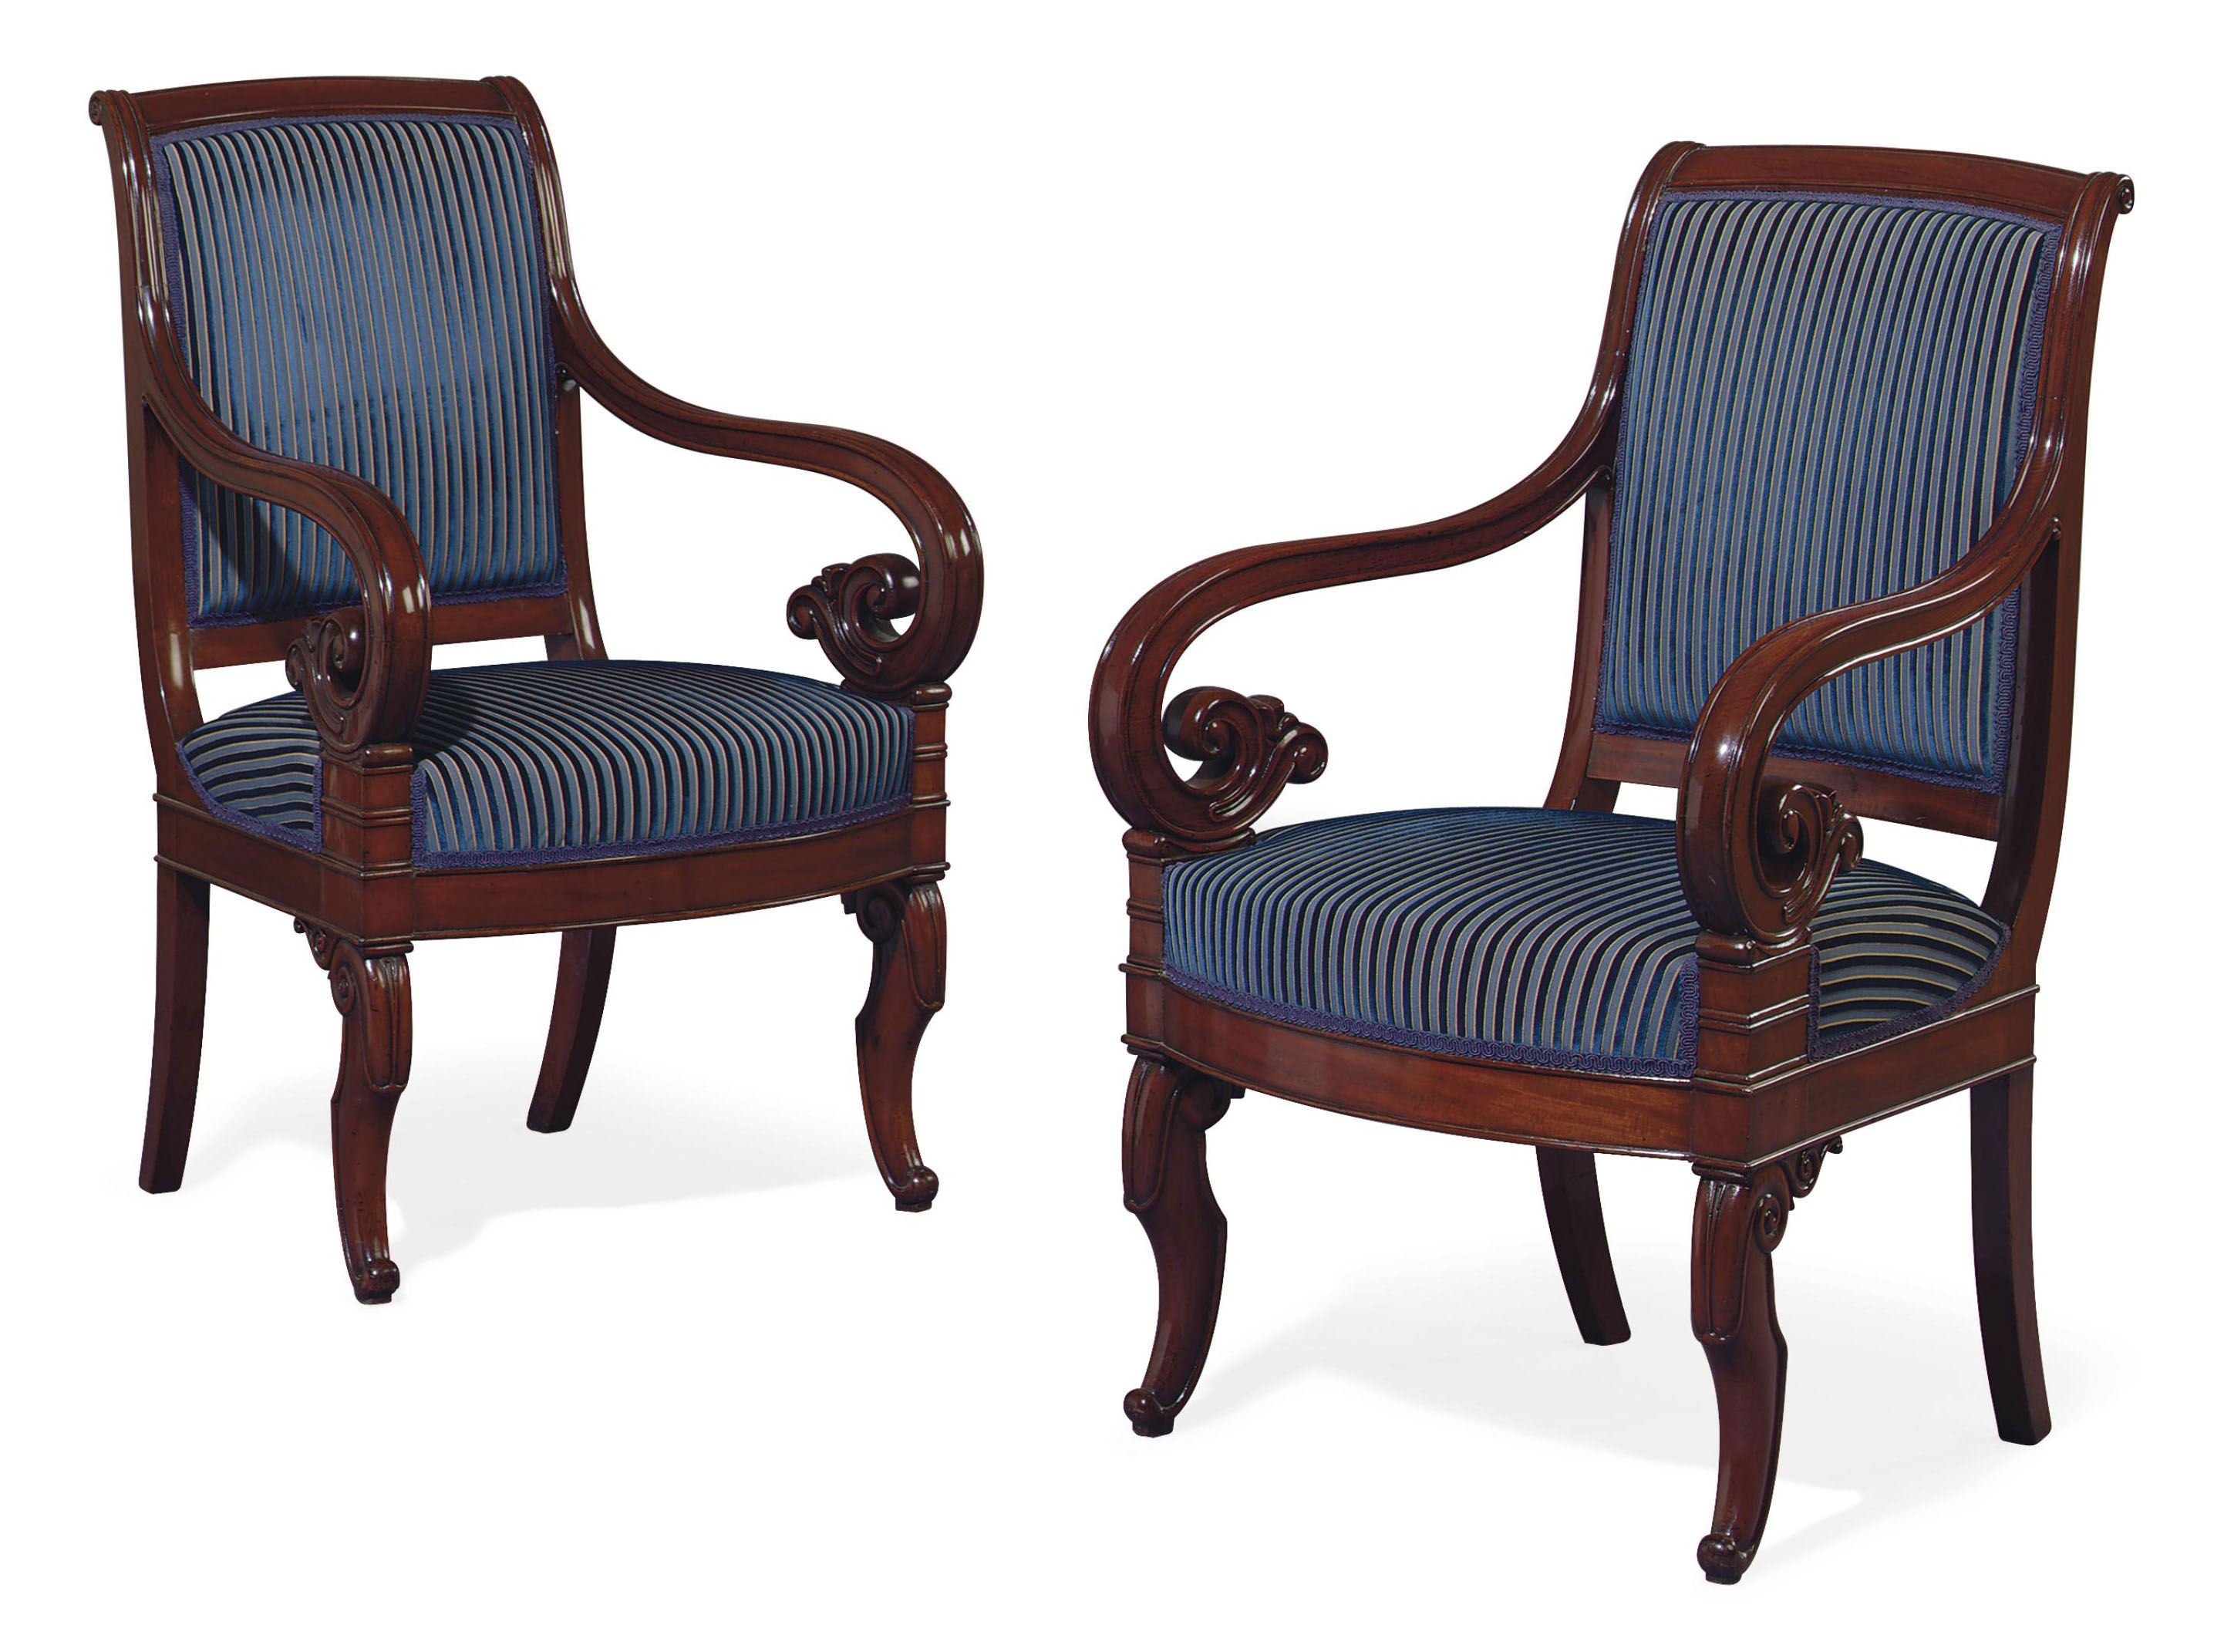 A PAIR OF LOUIS-PHILIPPE MAHOGANY FAUTEUILS